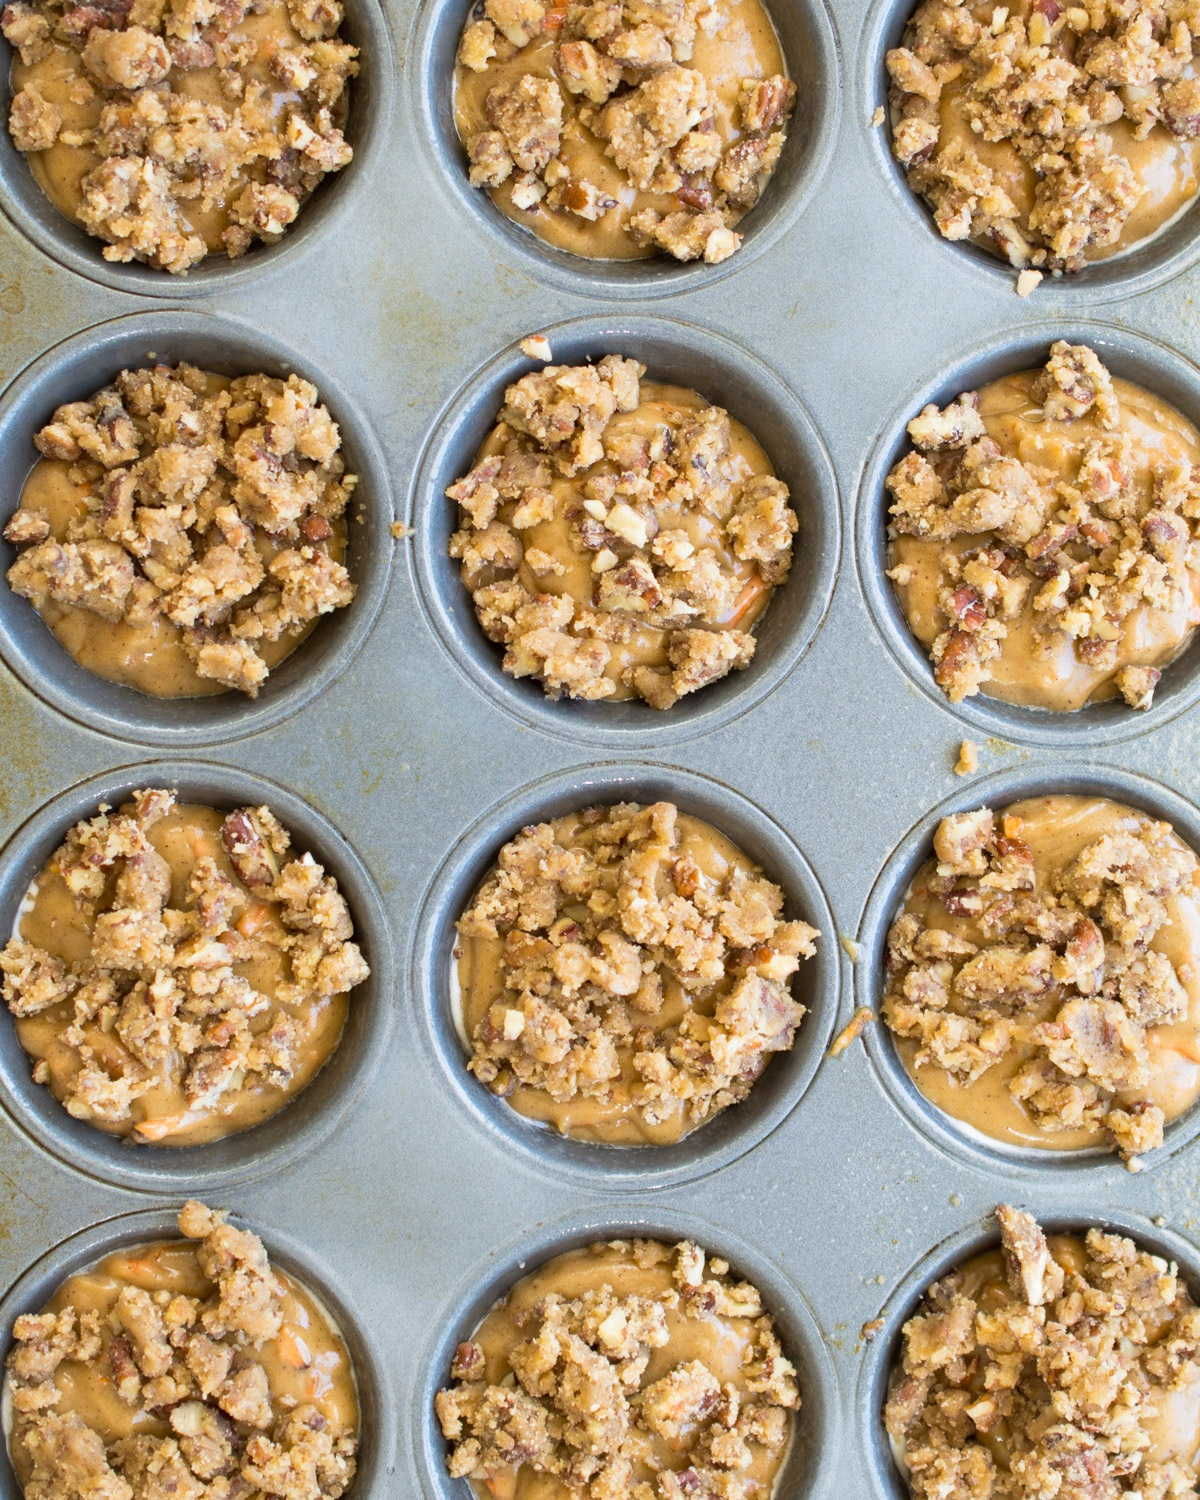 Muffins ready for the oven - just topped with pecan streusel.